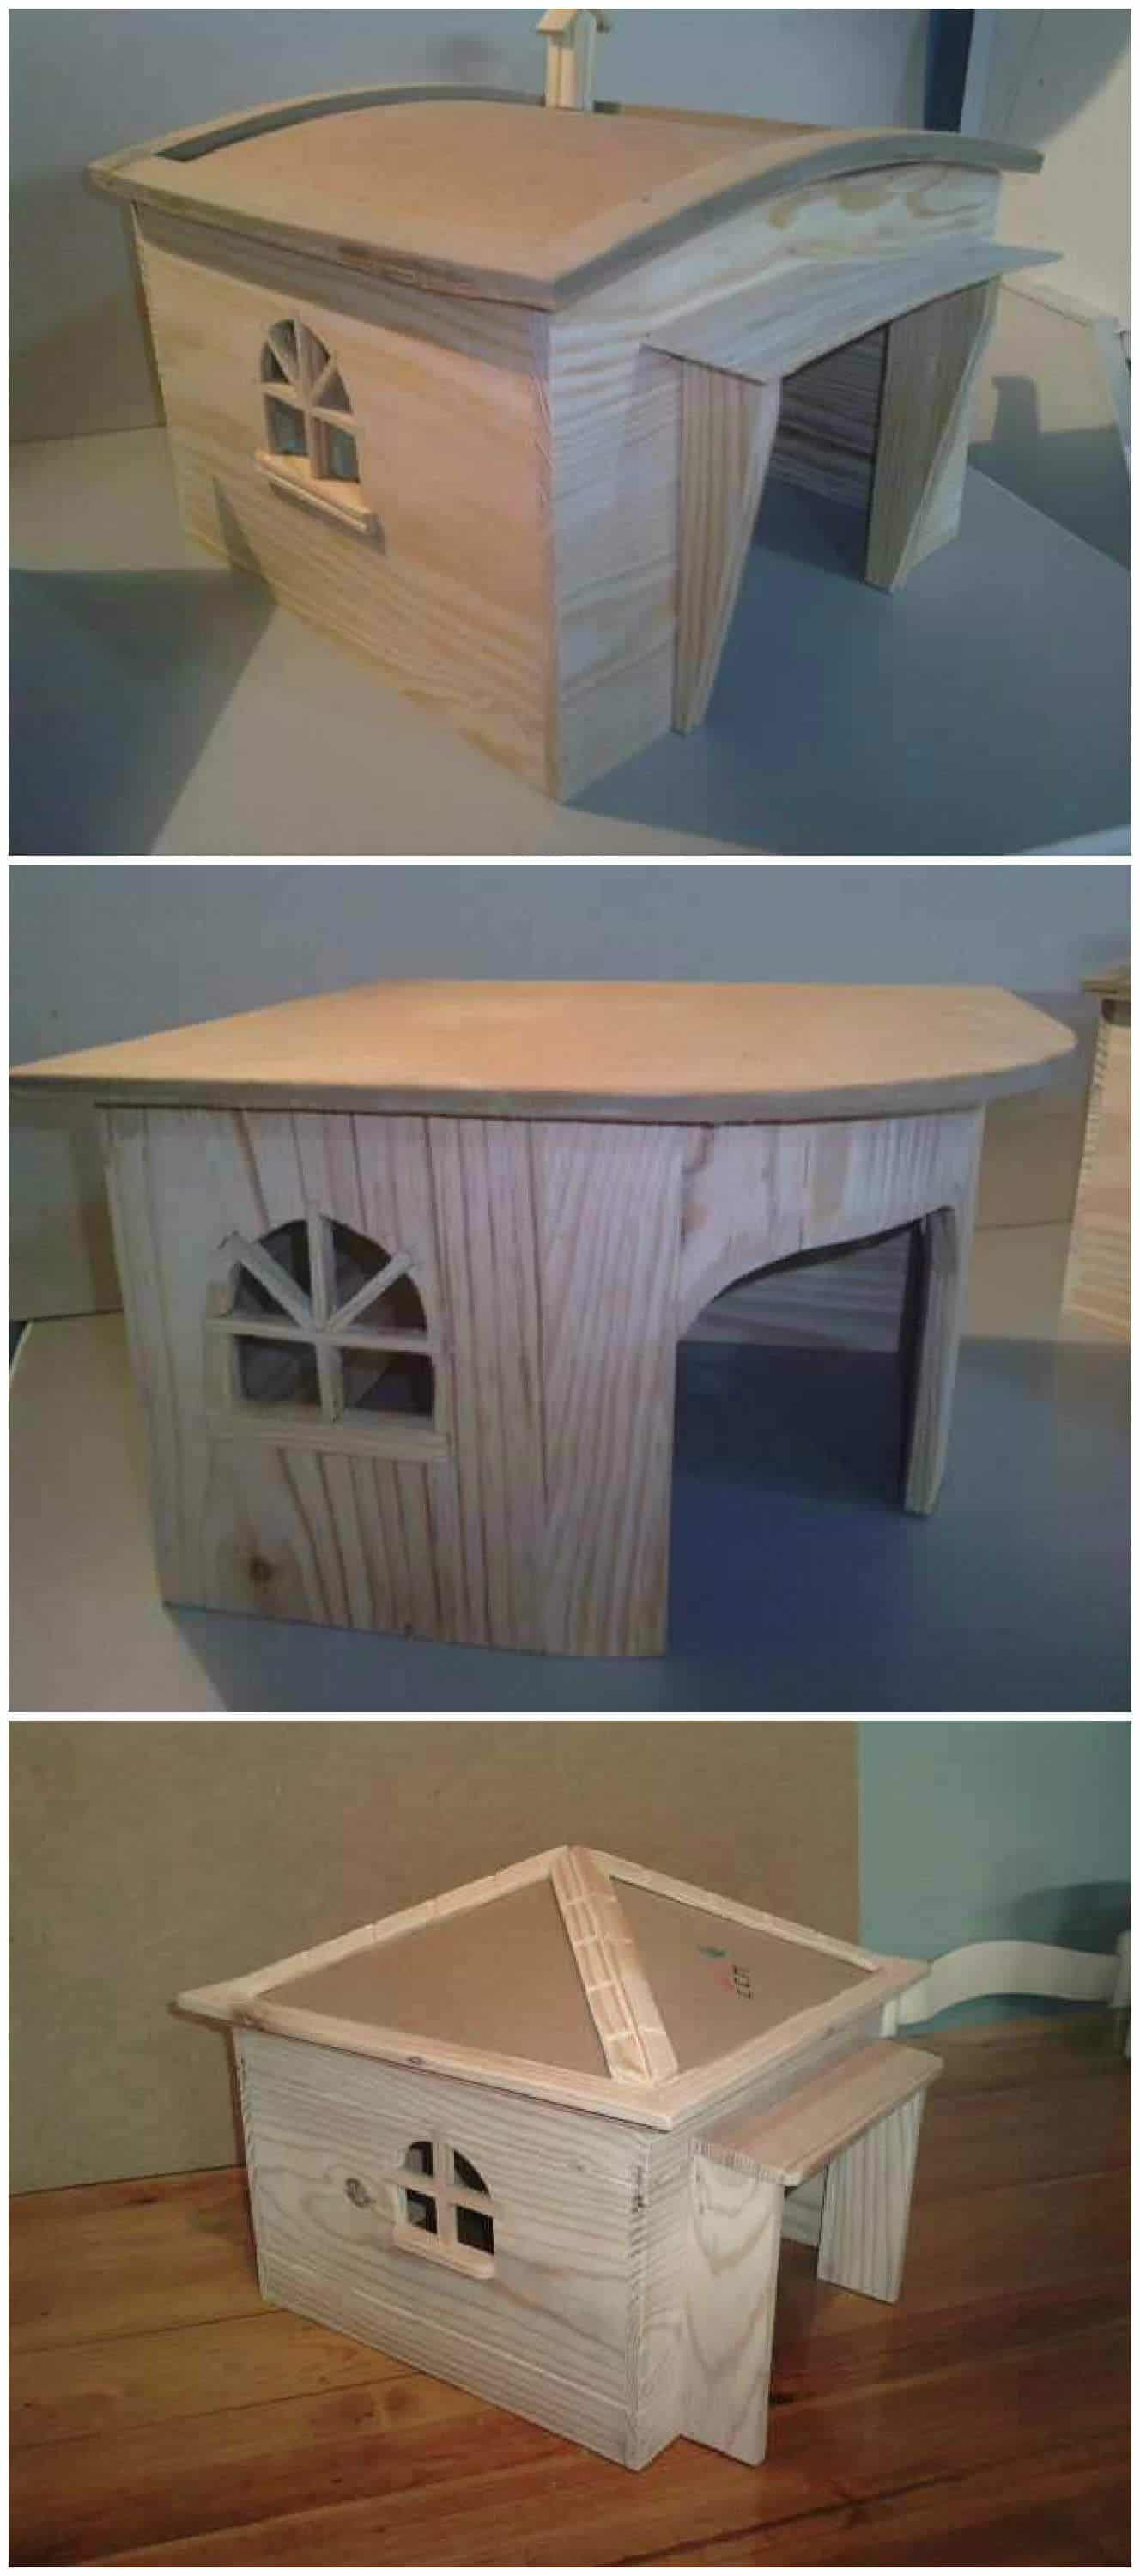 dog houses with recycled pallets • pallet ideas • 1001 pallets